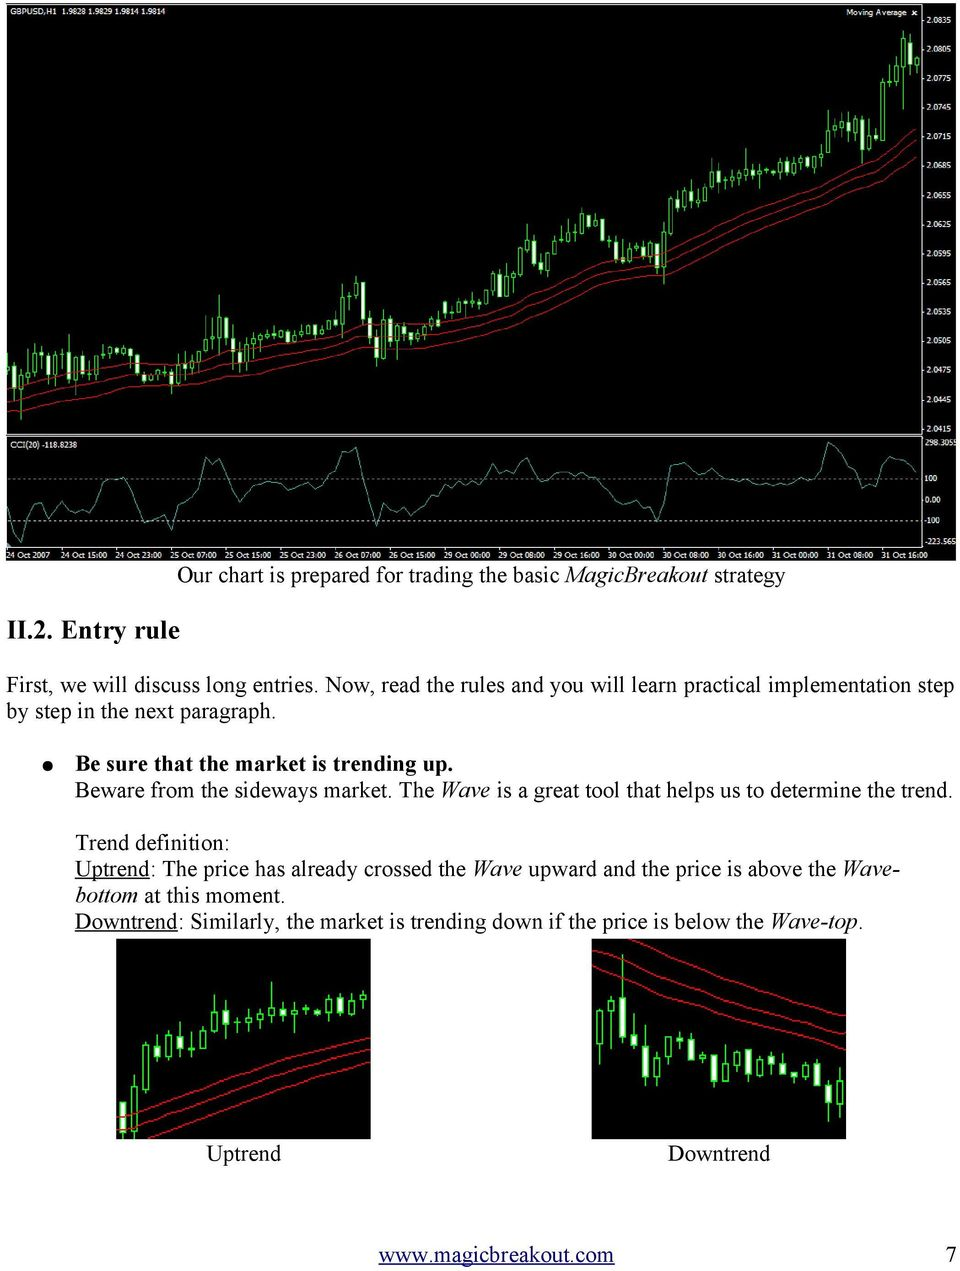 Beware from the sideways market. The Wave is a great tool that helps us to determine the trend.